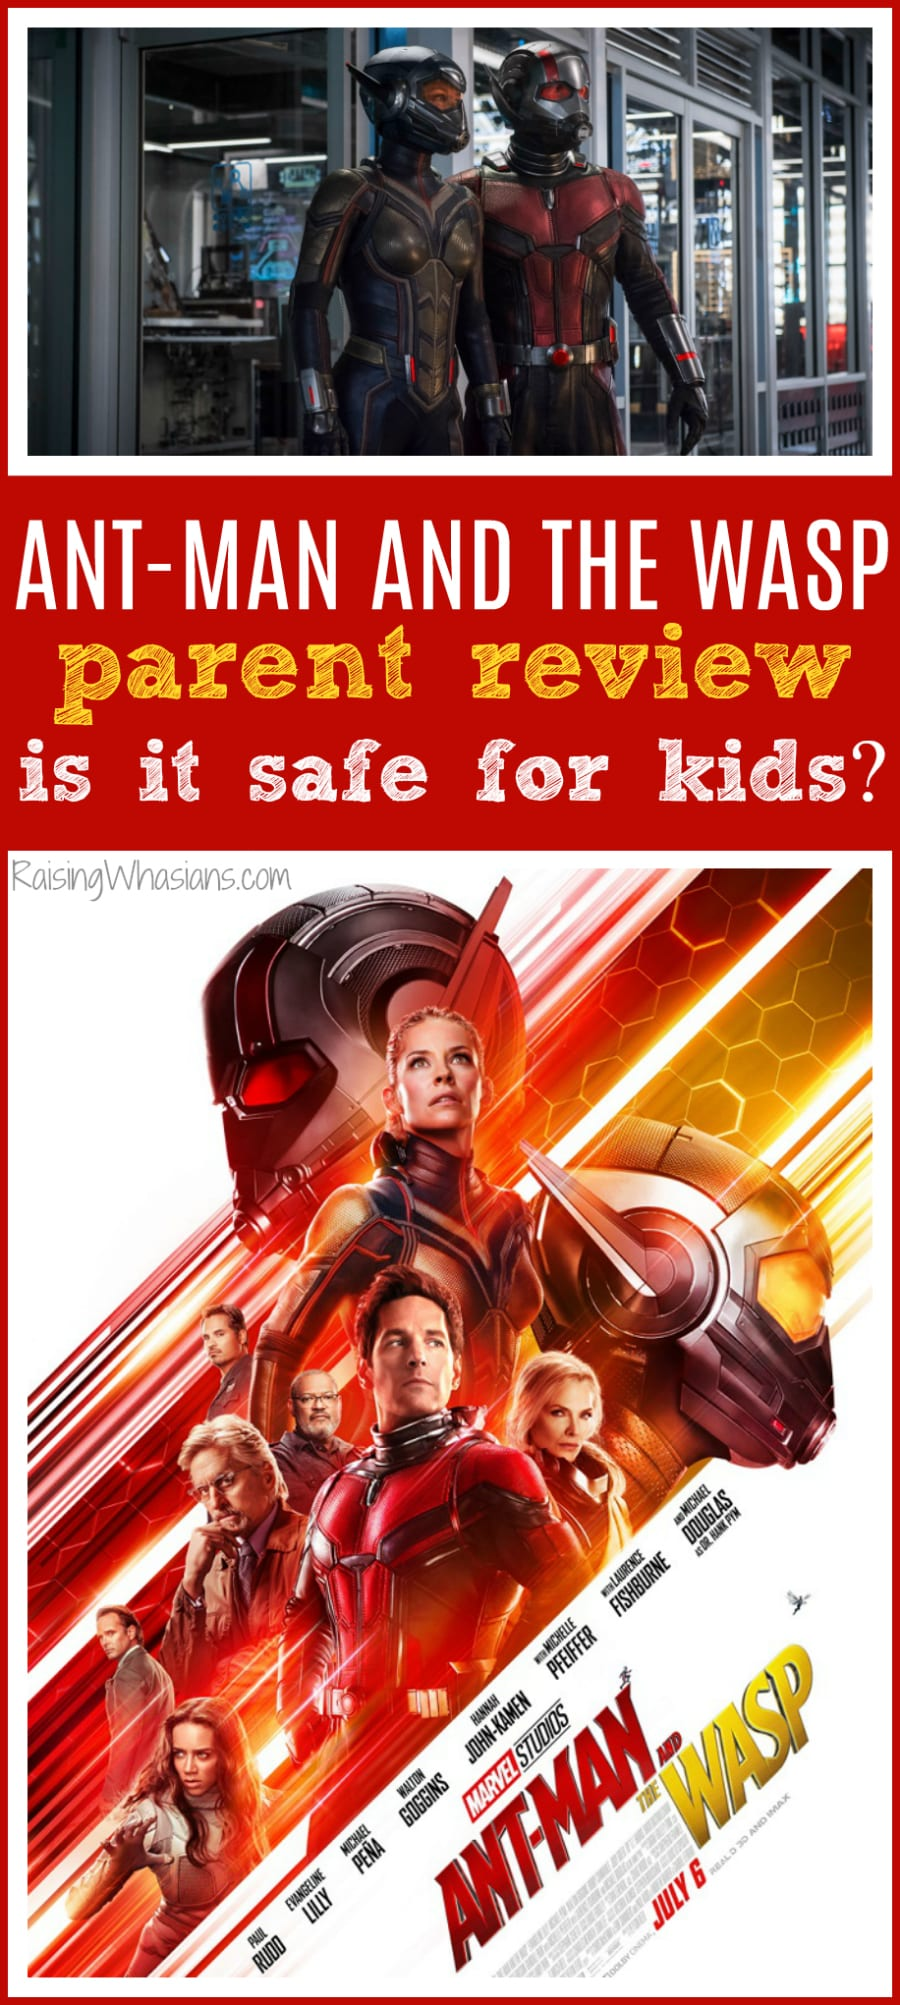 Ant-man and the wasp ok for children